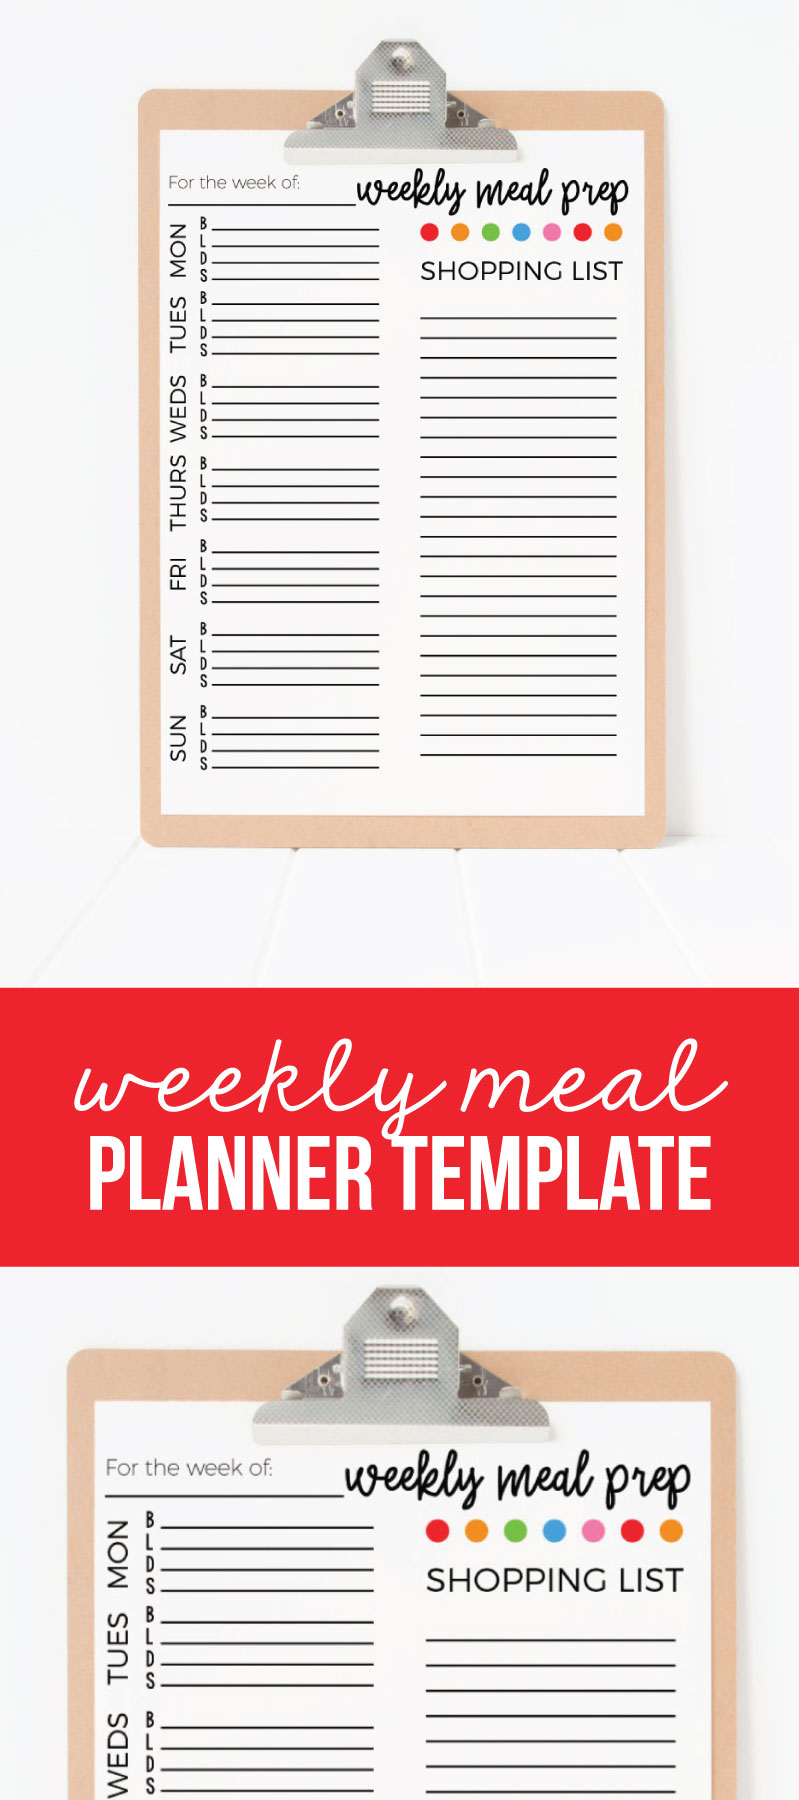 This is a graphic of Old Fashioned Printable Weekly Meal Planners